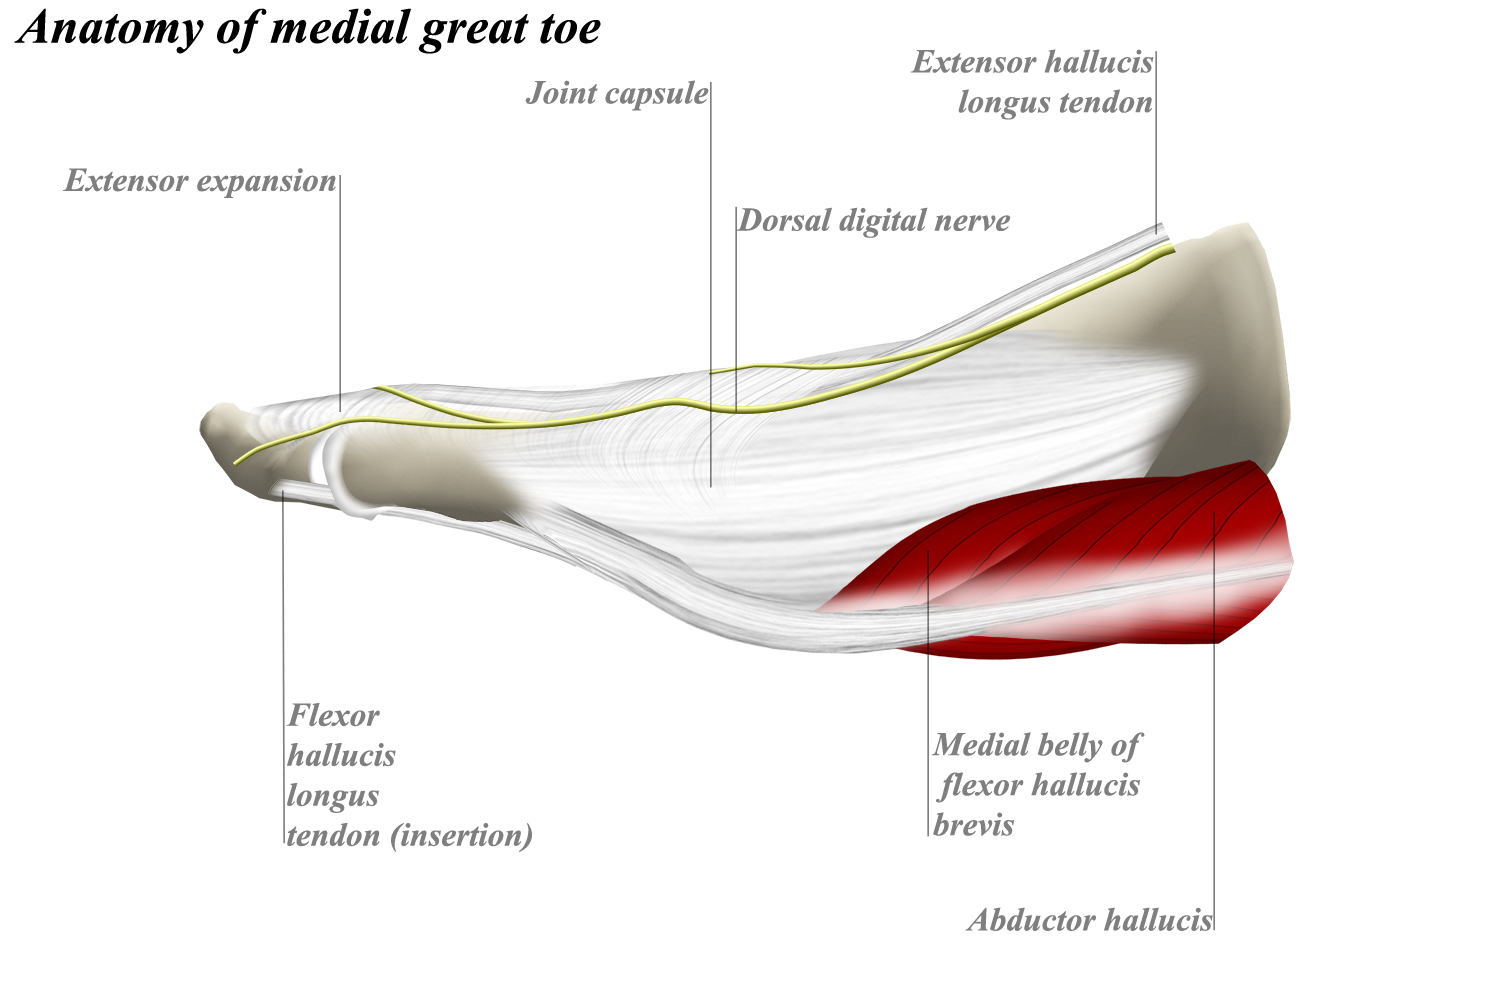 Anatomy Of A Great Picture: Anatomy Of Medial Great ToeAnatomy Of Medial Great Toe